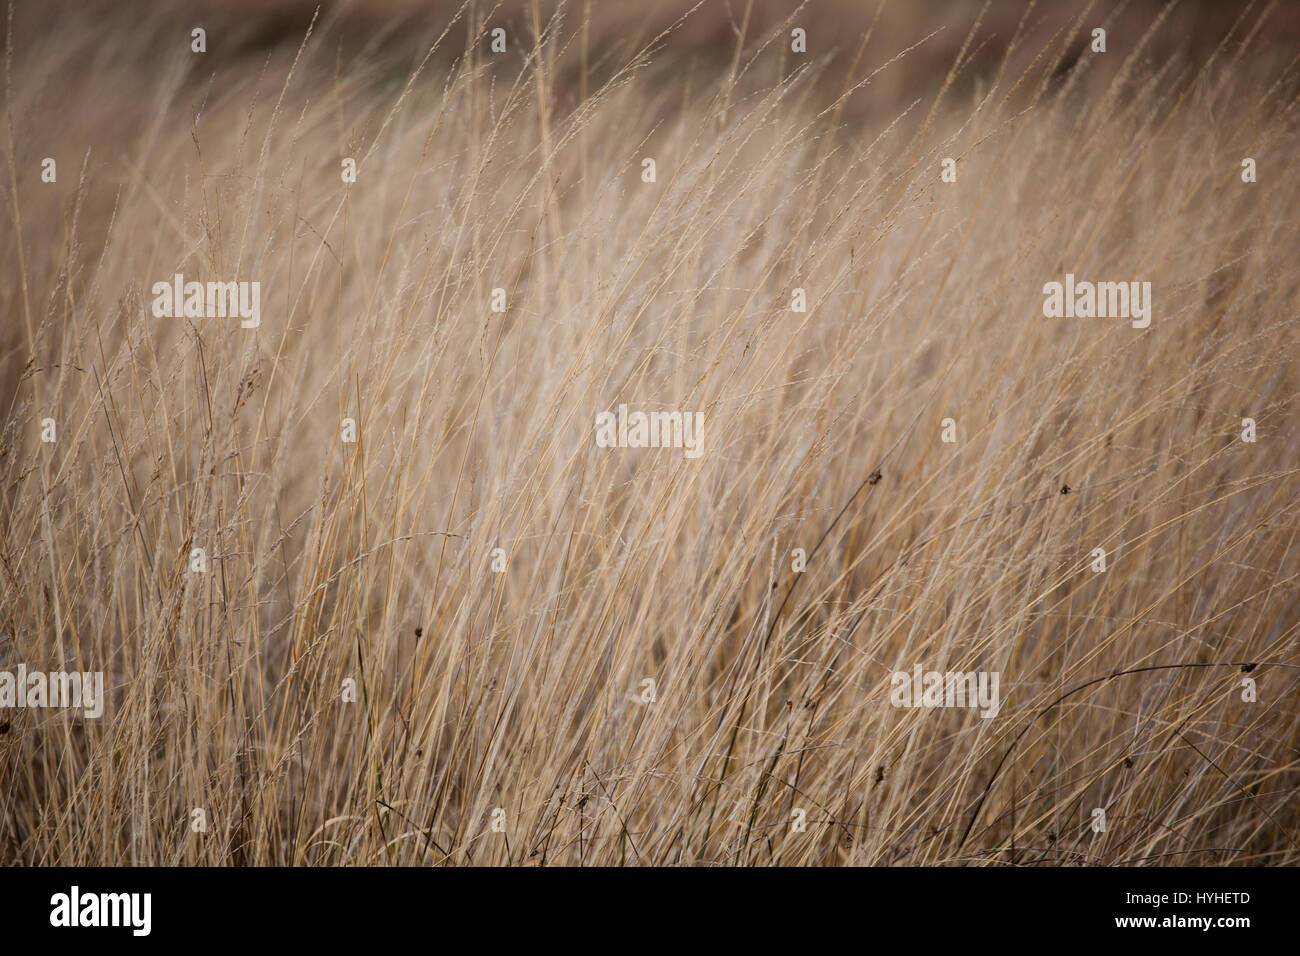 the beauty in the detail - Richmond Park, London - Stock Image